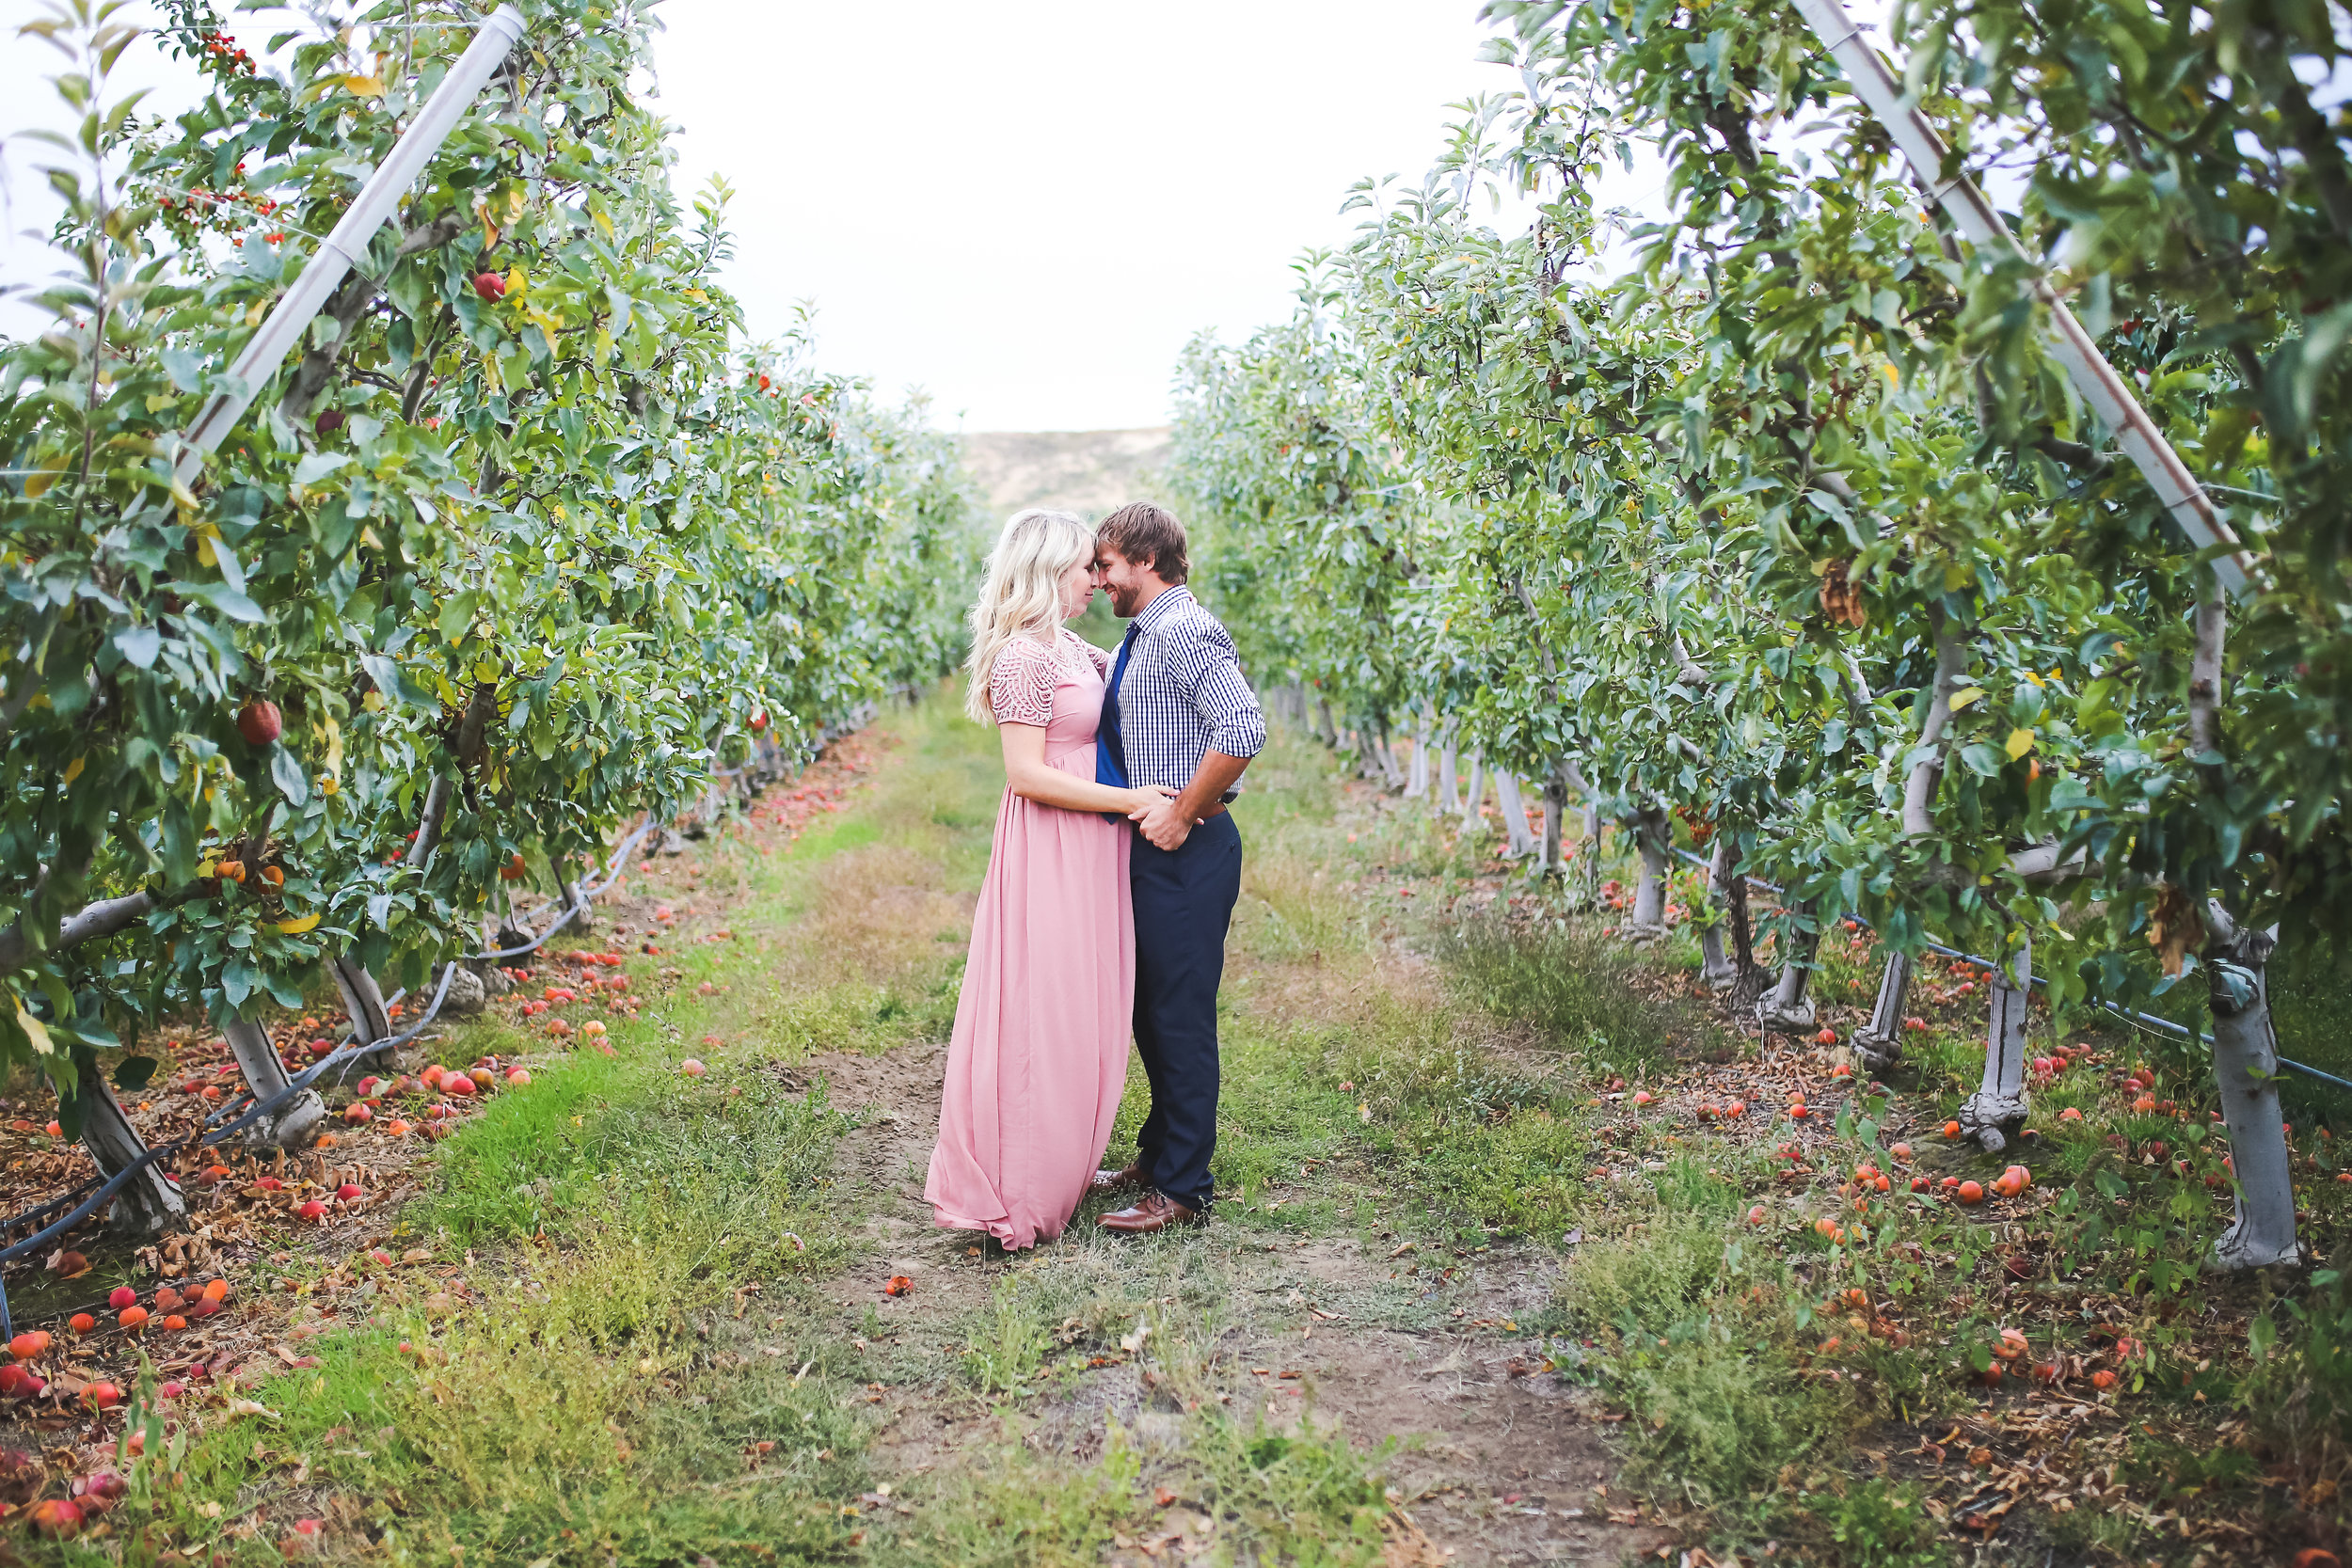 Anderson maternity session in a beautiful Tri-City apple orchard